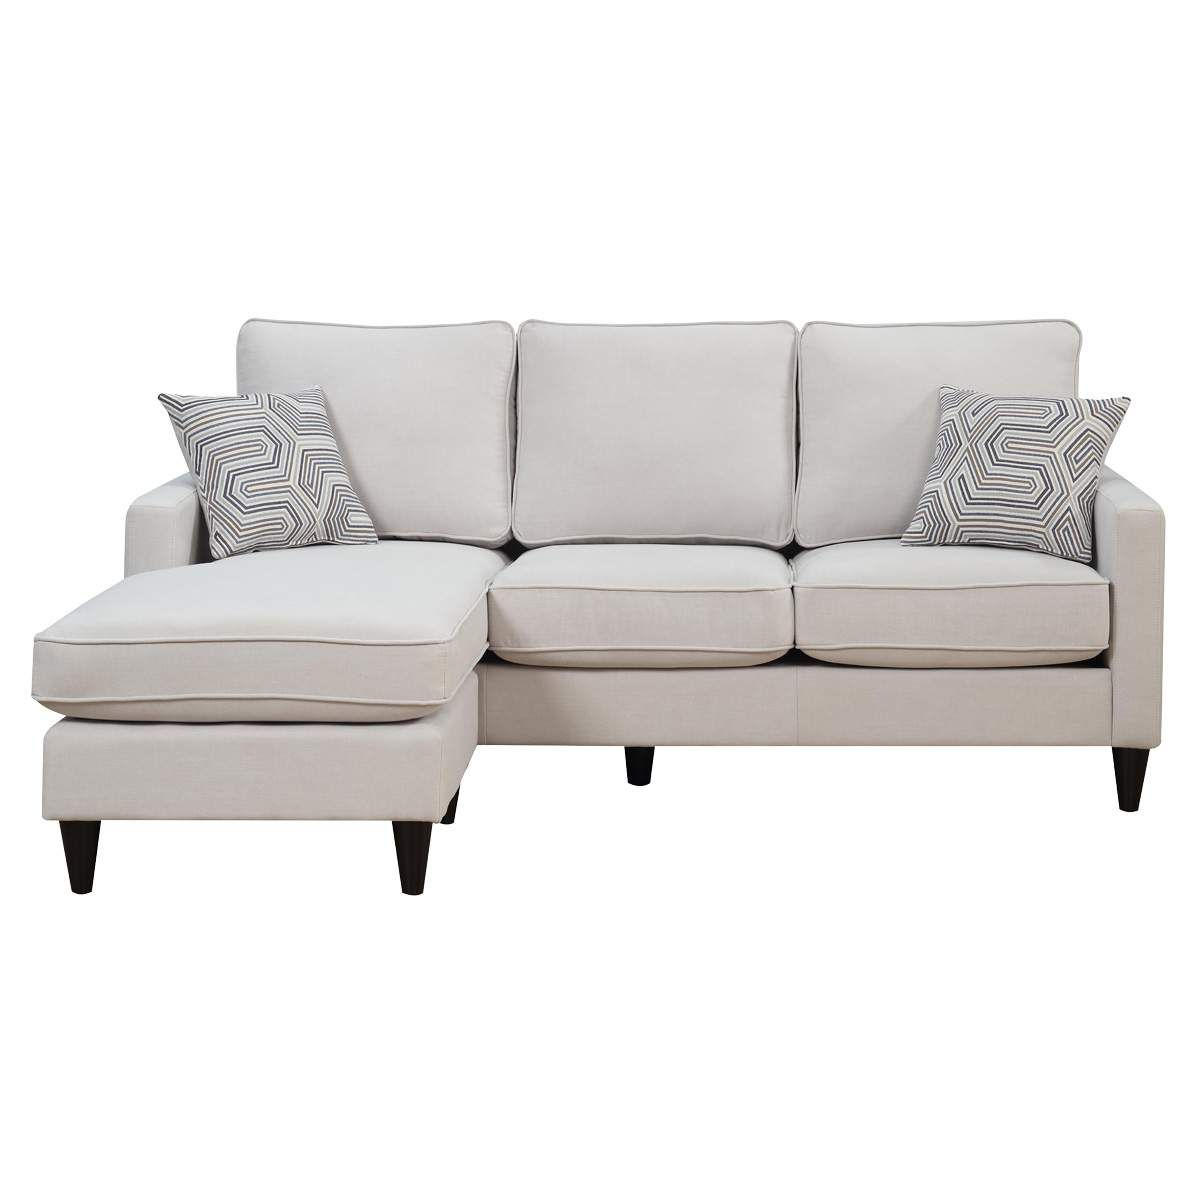 Tremendous Pin By Darriell Slayton On Sofa Chaise Furniture Sofa Ncnpc Chair Design For Home Ncnpcorg